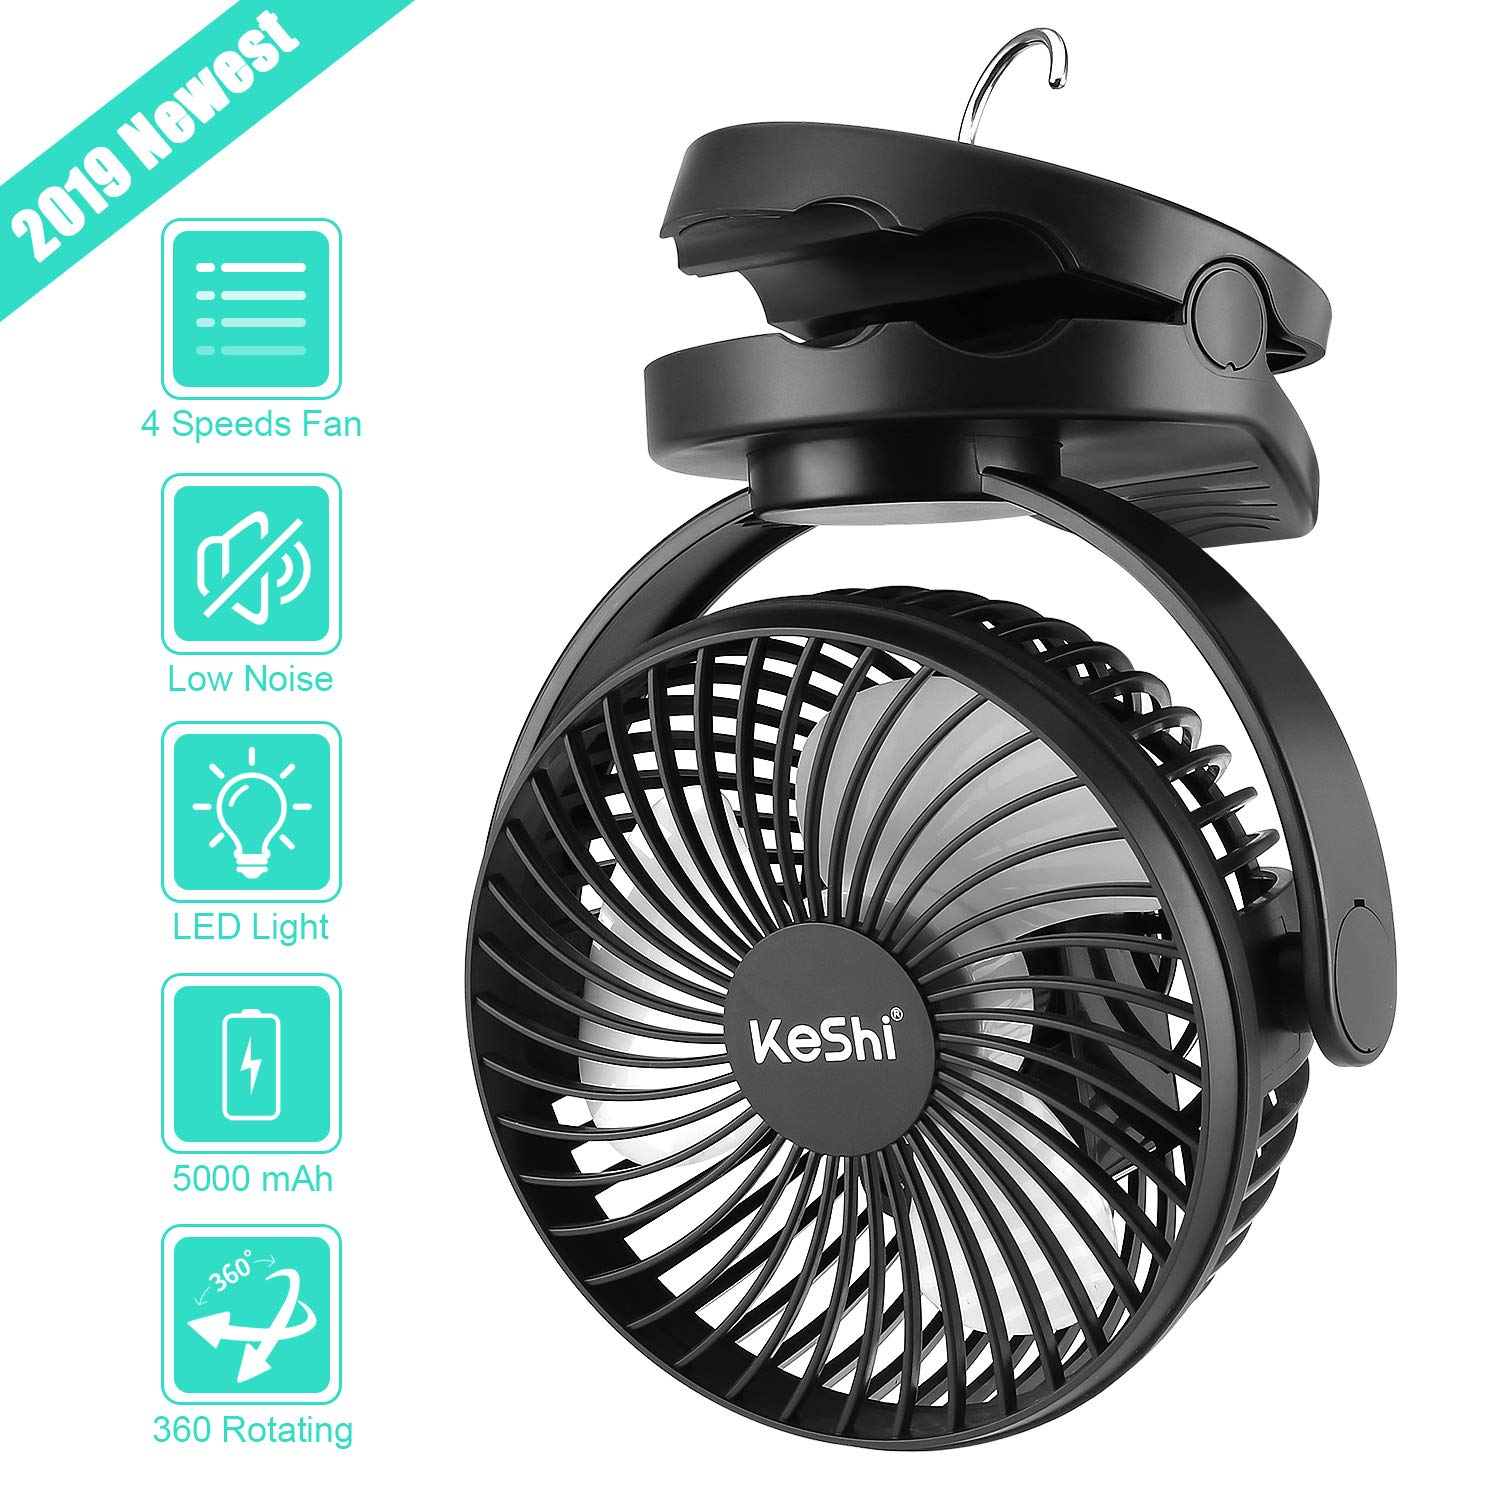 Camping Tent Fan with LED Lantern – 4 Speeds 5000 mAh Battery Operated Personal Desk Fan – Ultra Silent Clip on Fan for Stroller – Portable USB Rechargeable Fan for Camping, Hiking, Home and Office